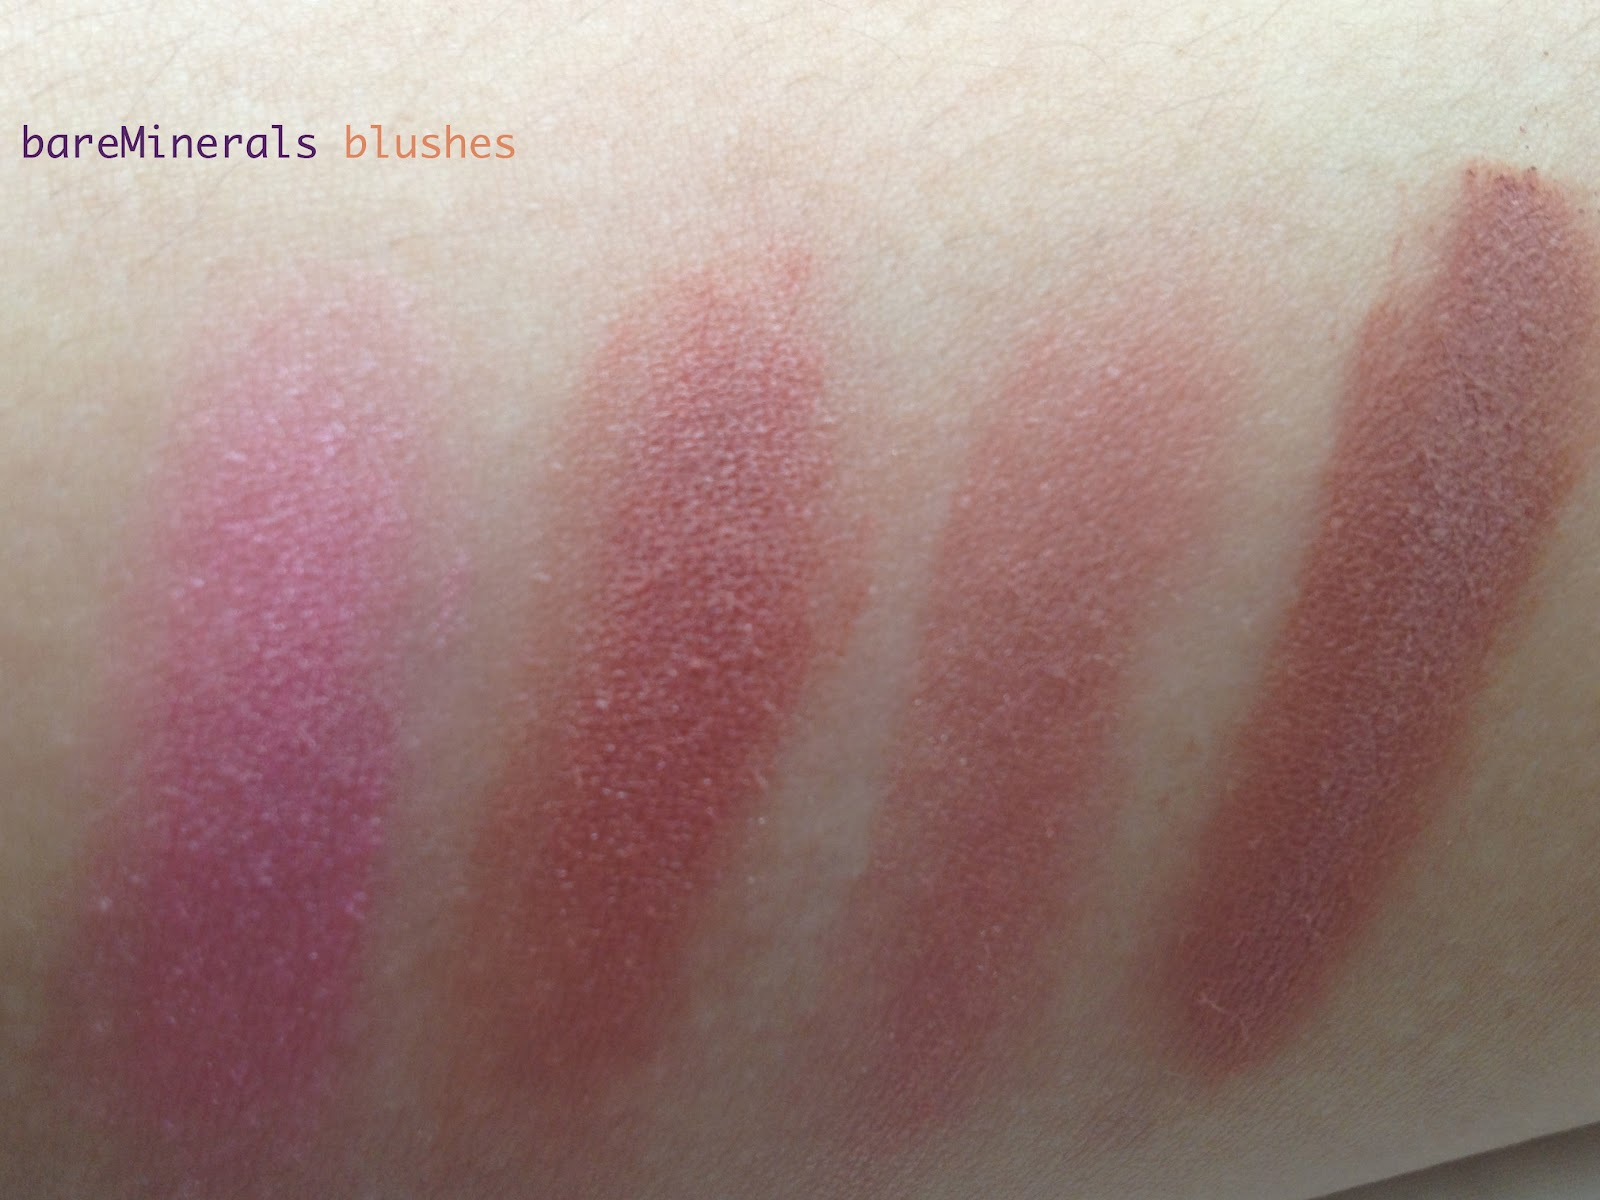 The Beauty Muse-ment: bareMinerals Blushes Review and Swatches